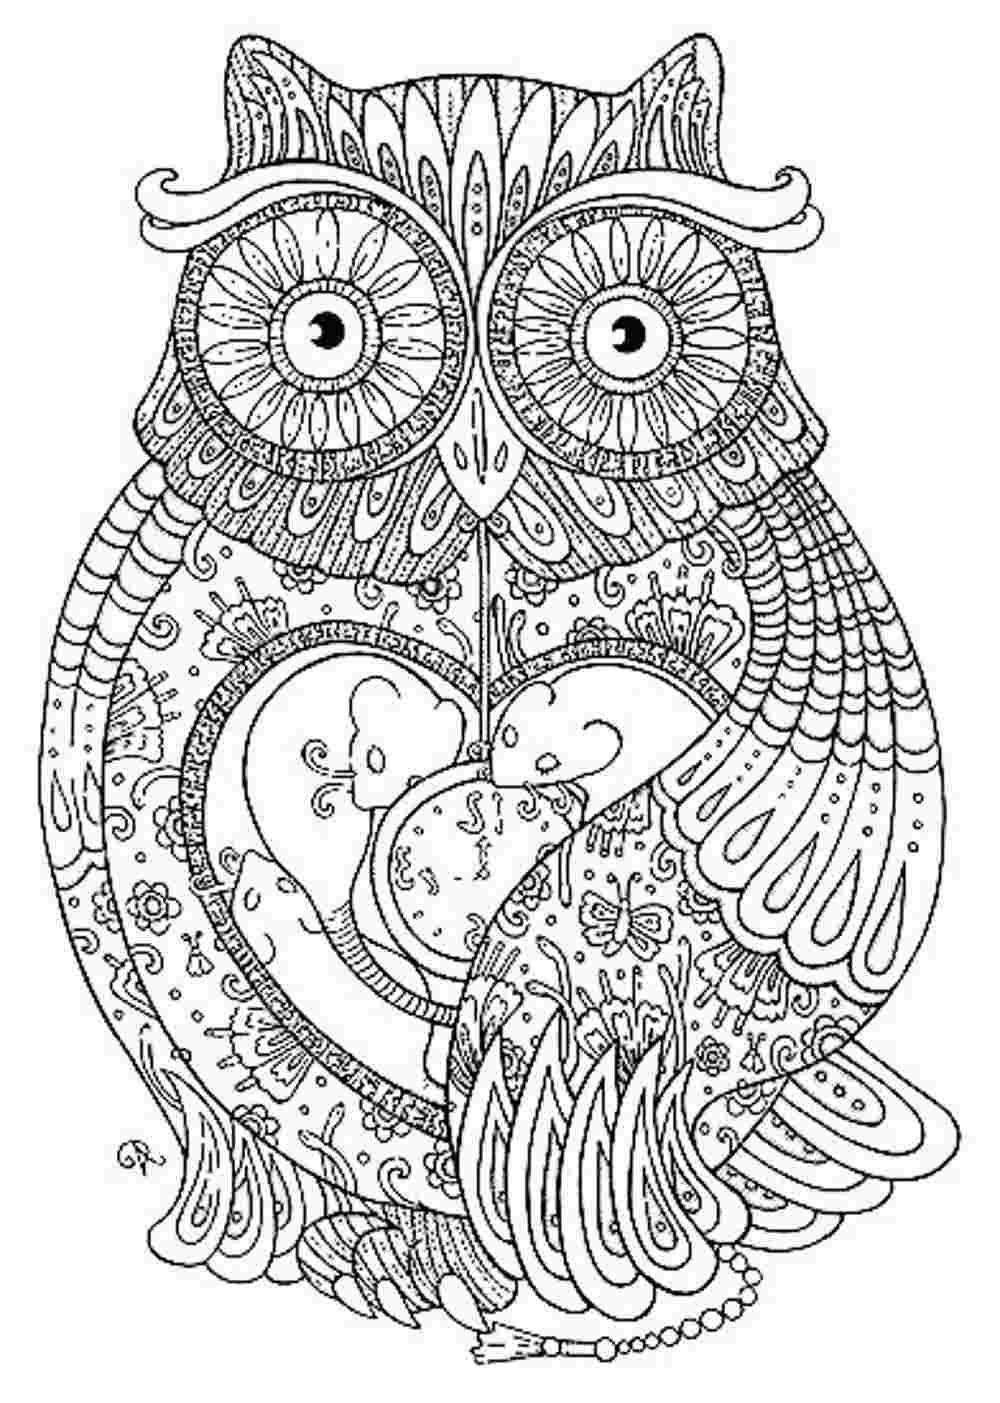 Animal mandala coloring pages to download and print for